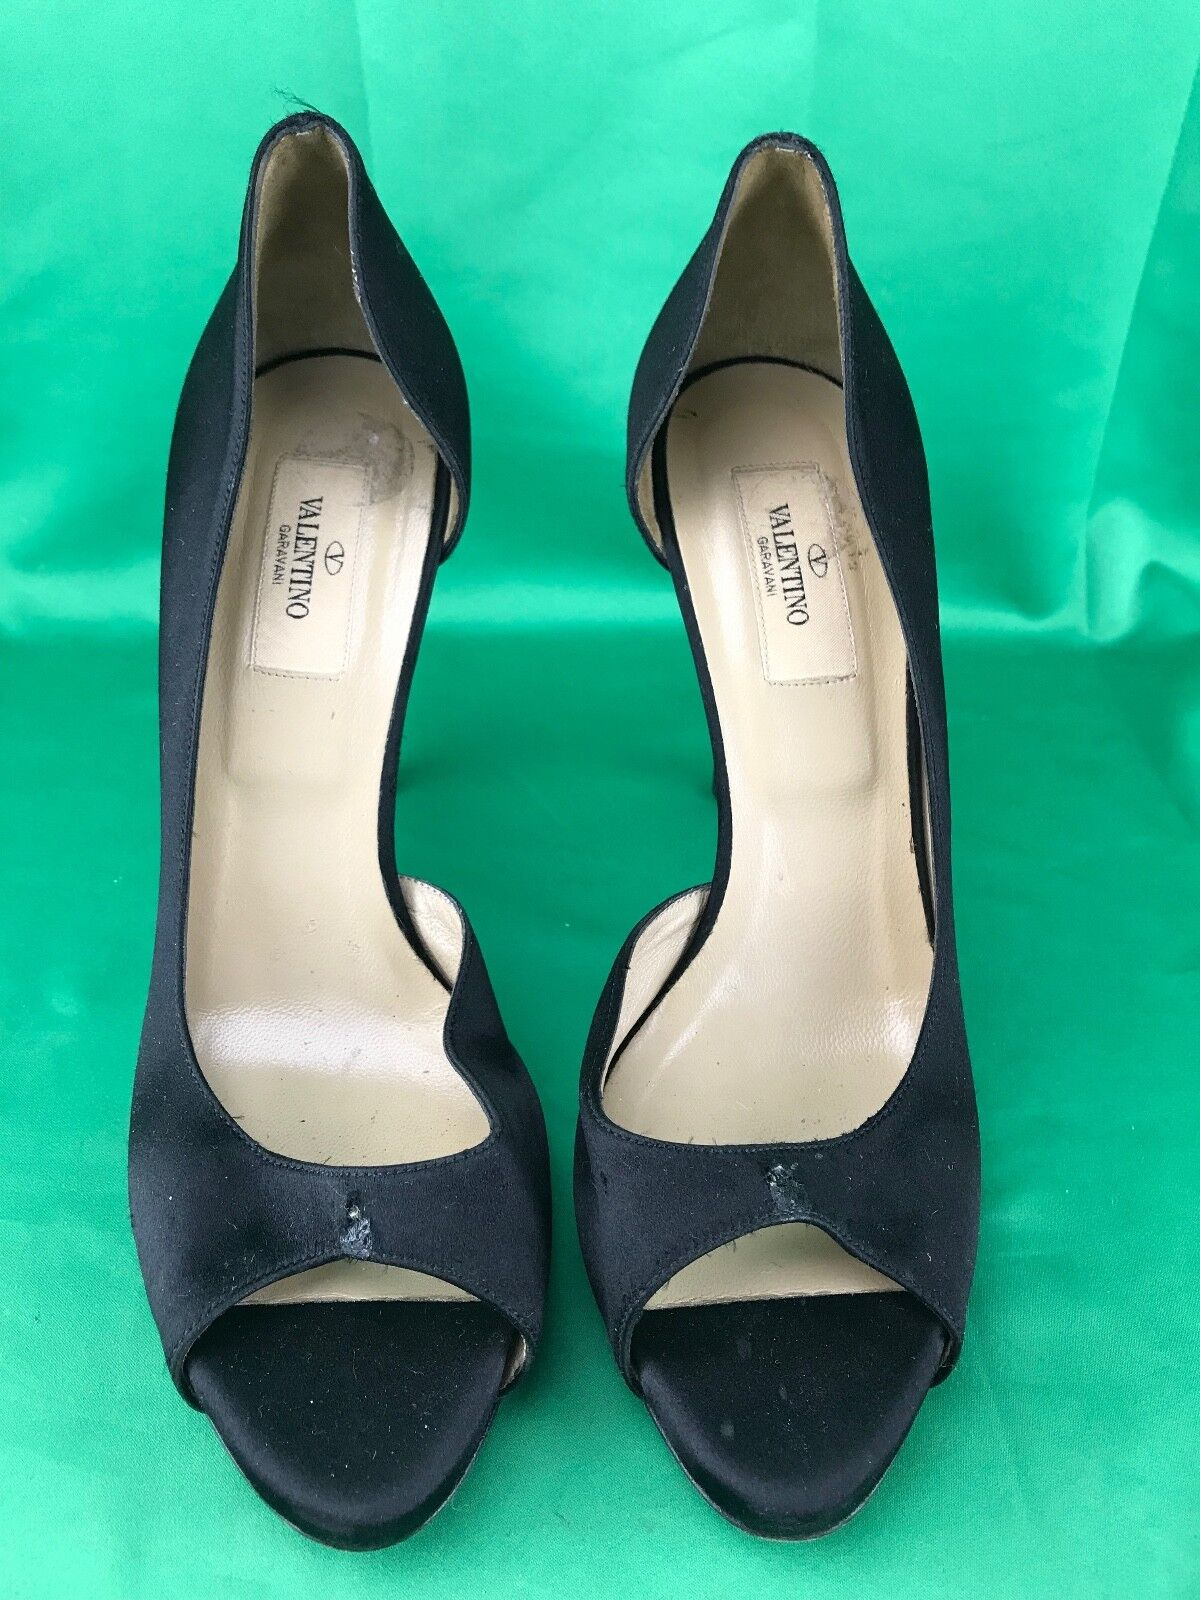 VALENTINO Satin D'Orsay Jeweled Rhinestone Bow Peep Toe Pump (READ DESCRIPTION)